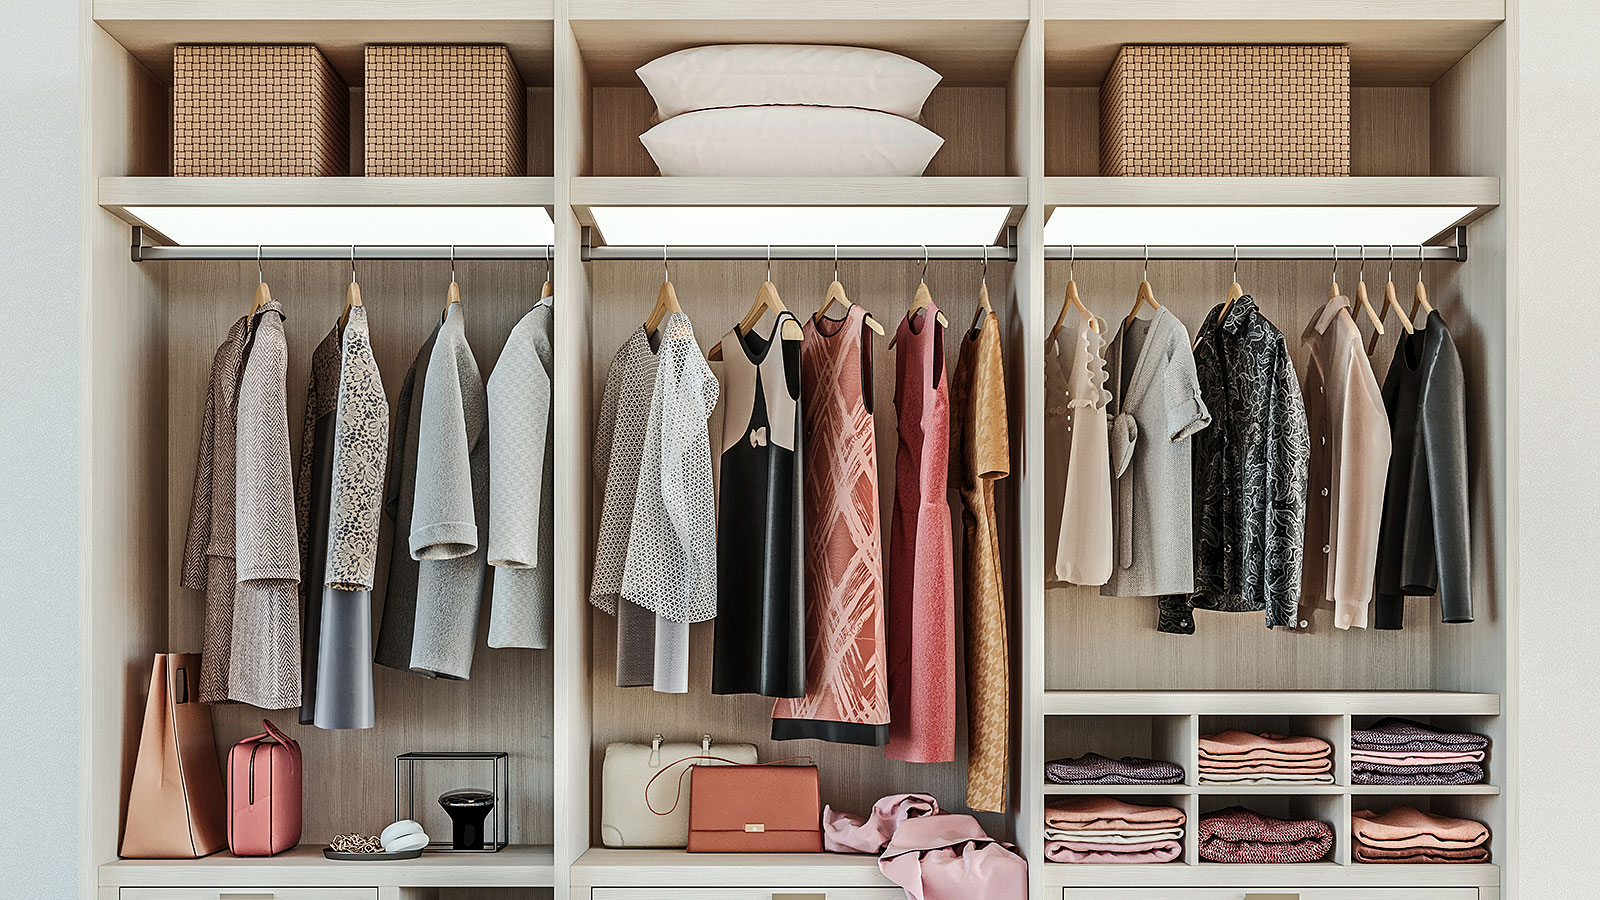 The items you need to build the perfect business professional attire wardrobe